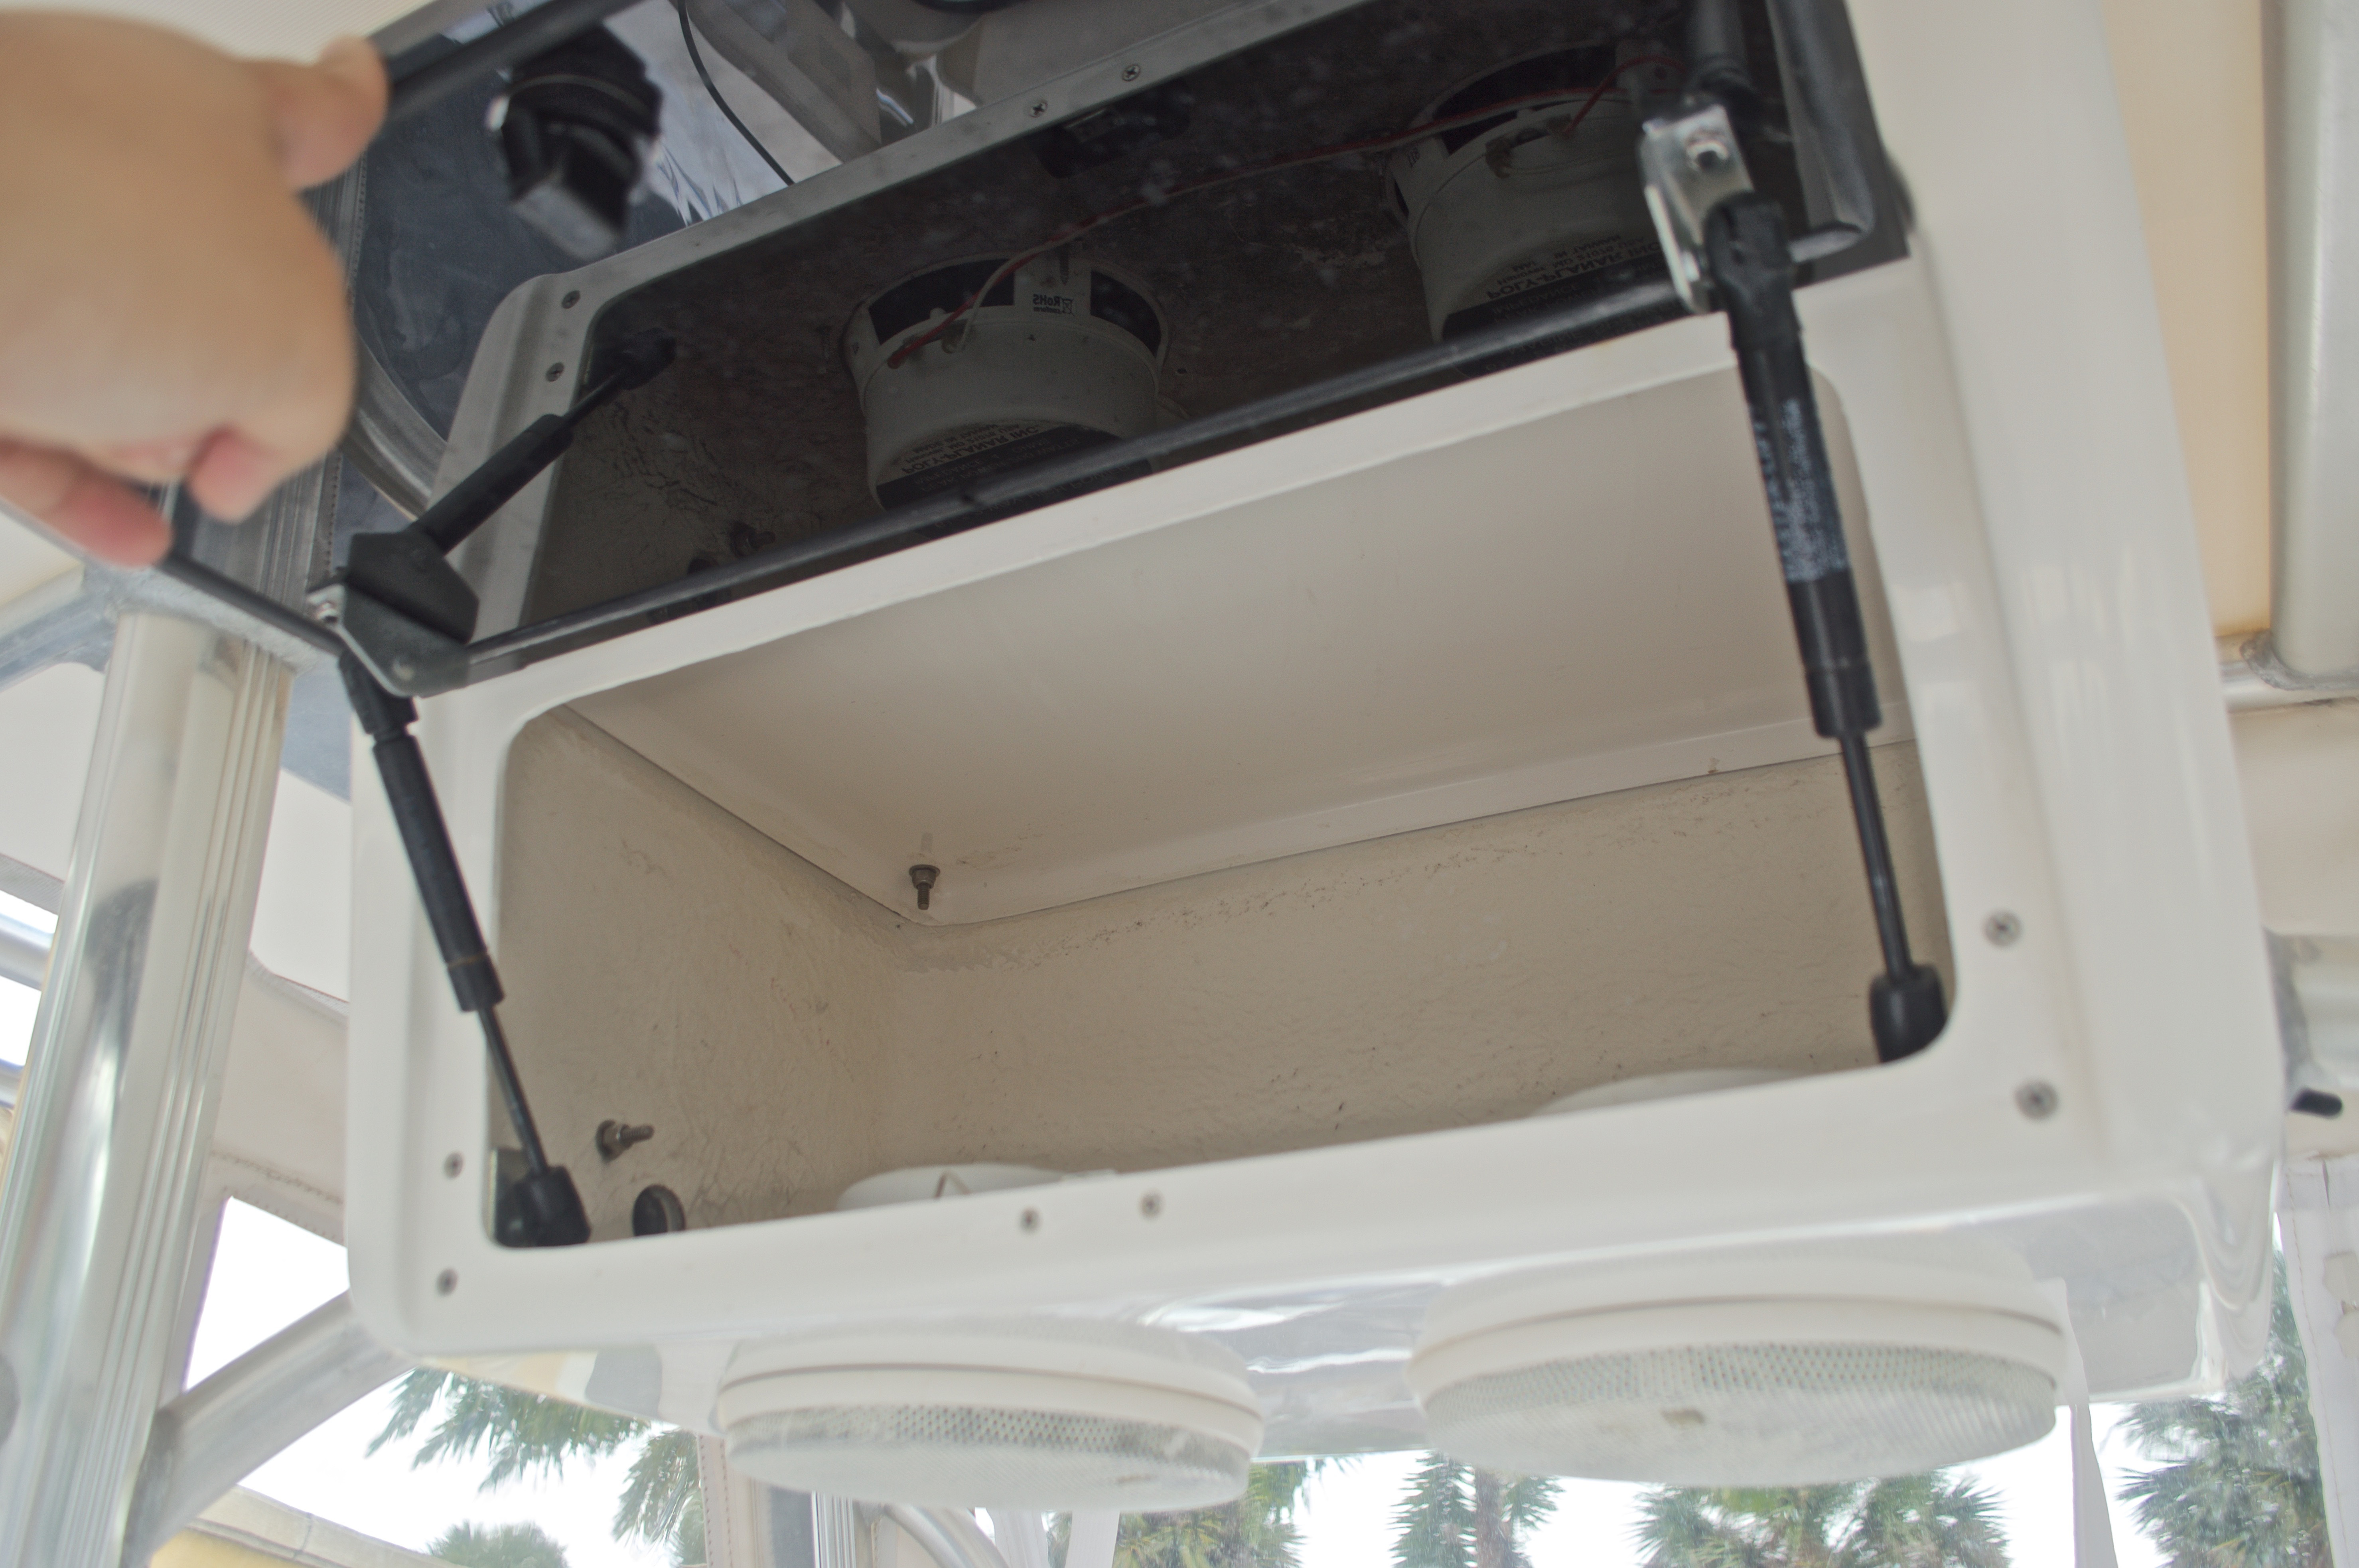 Thumbnail 28 for Used 2009 Sea Hunt 207 Triton boat for sale in West Palm Beach, FL